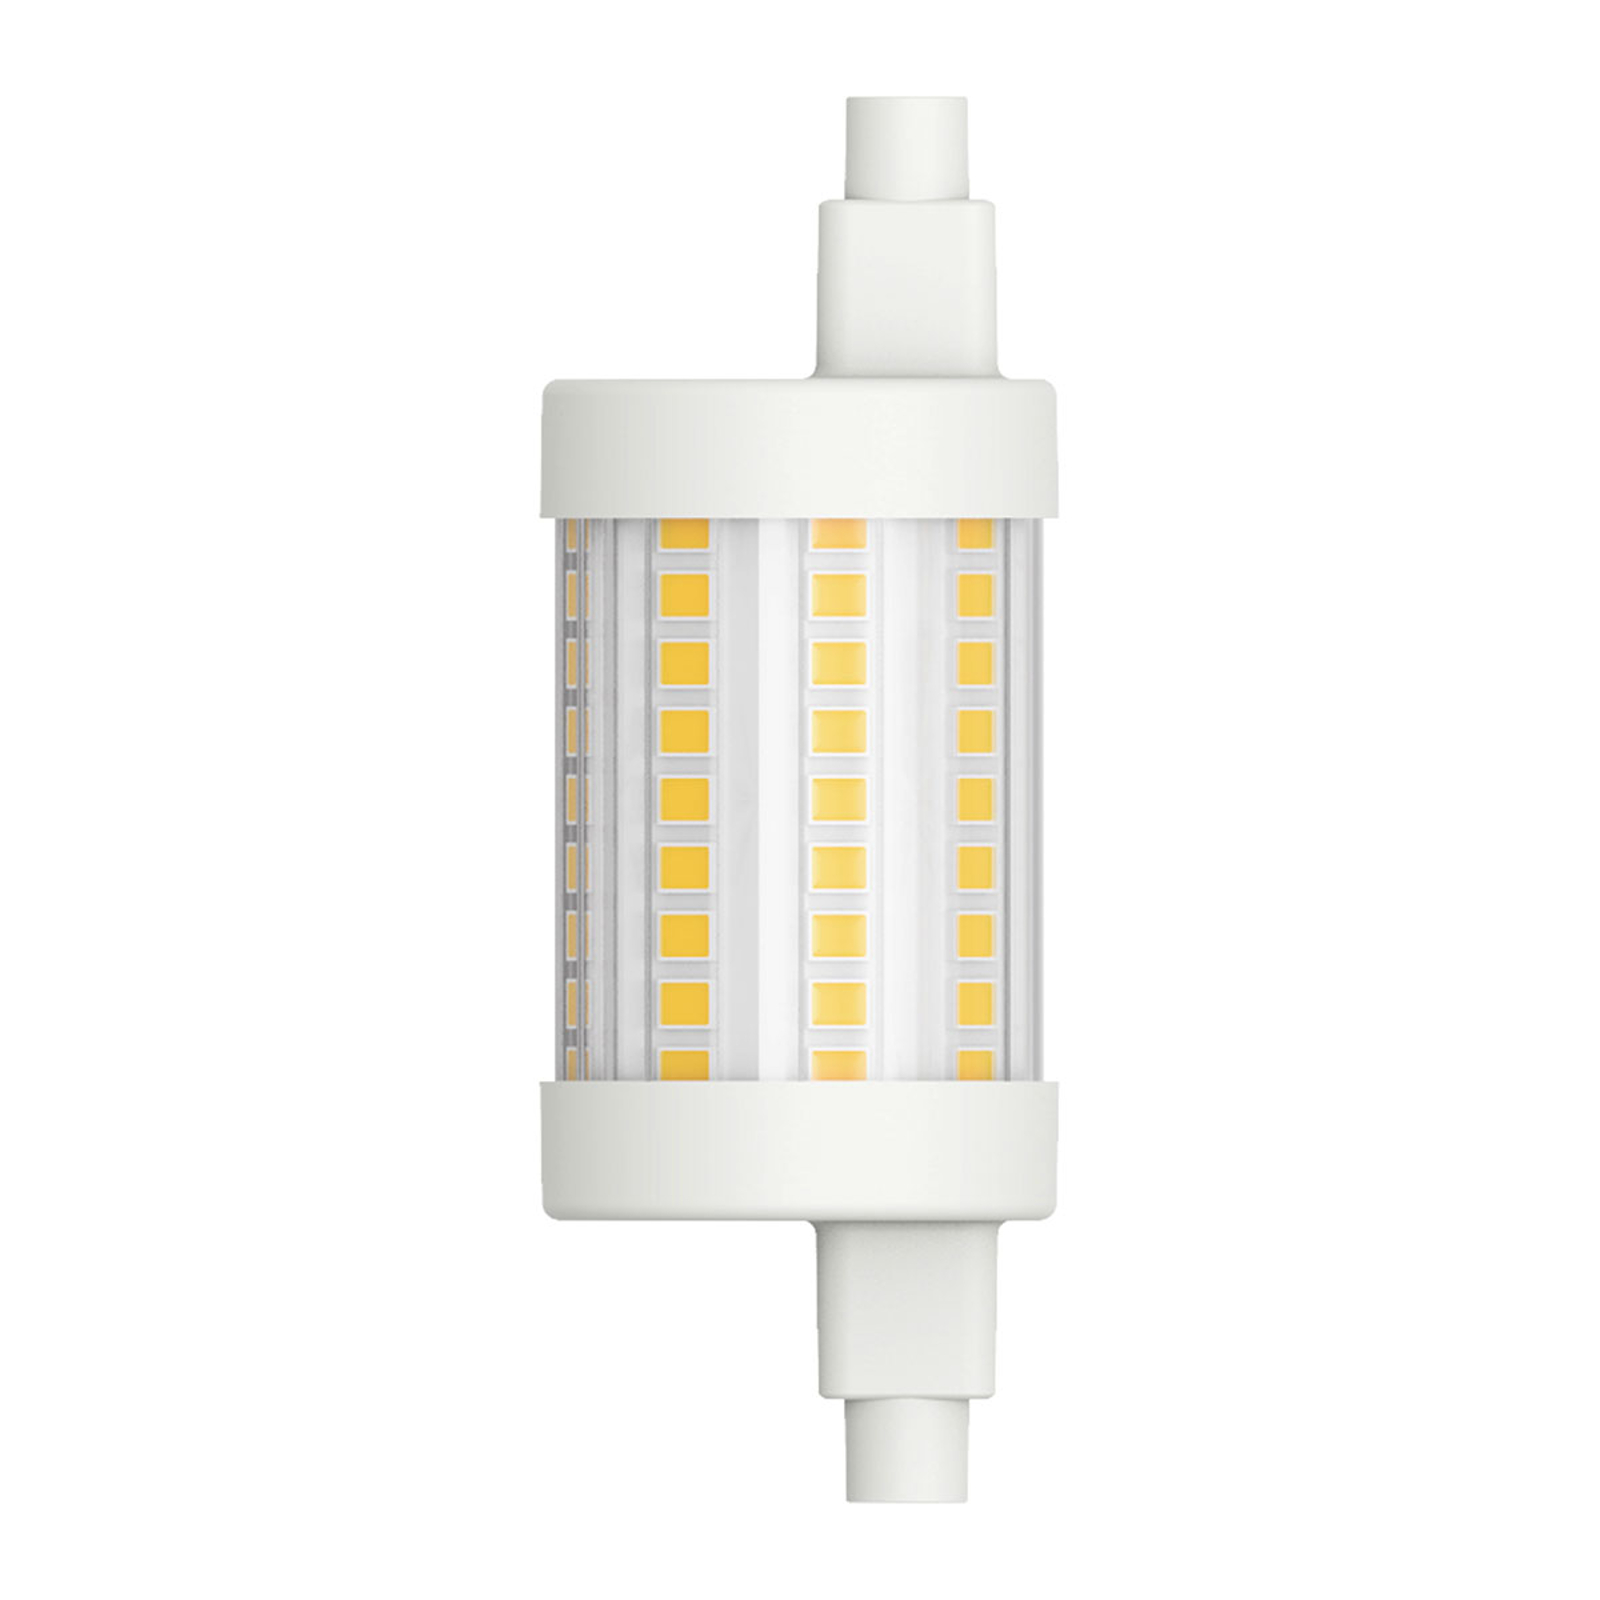 LED-Stablampe R7s 78,3 mm 8W warmweiß